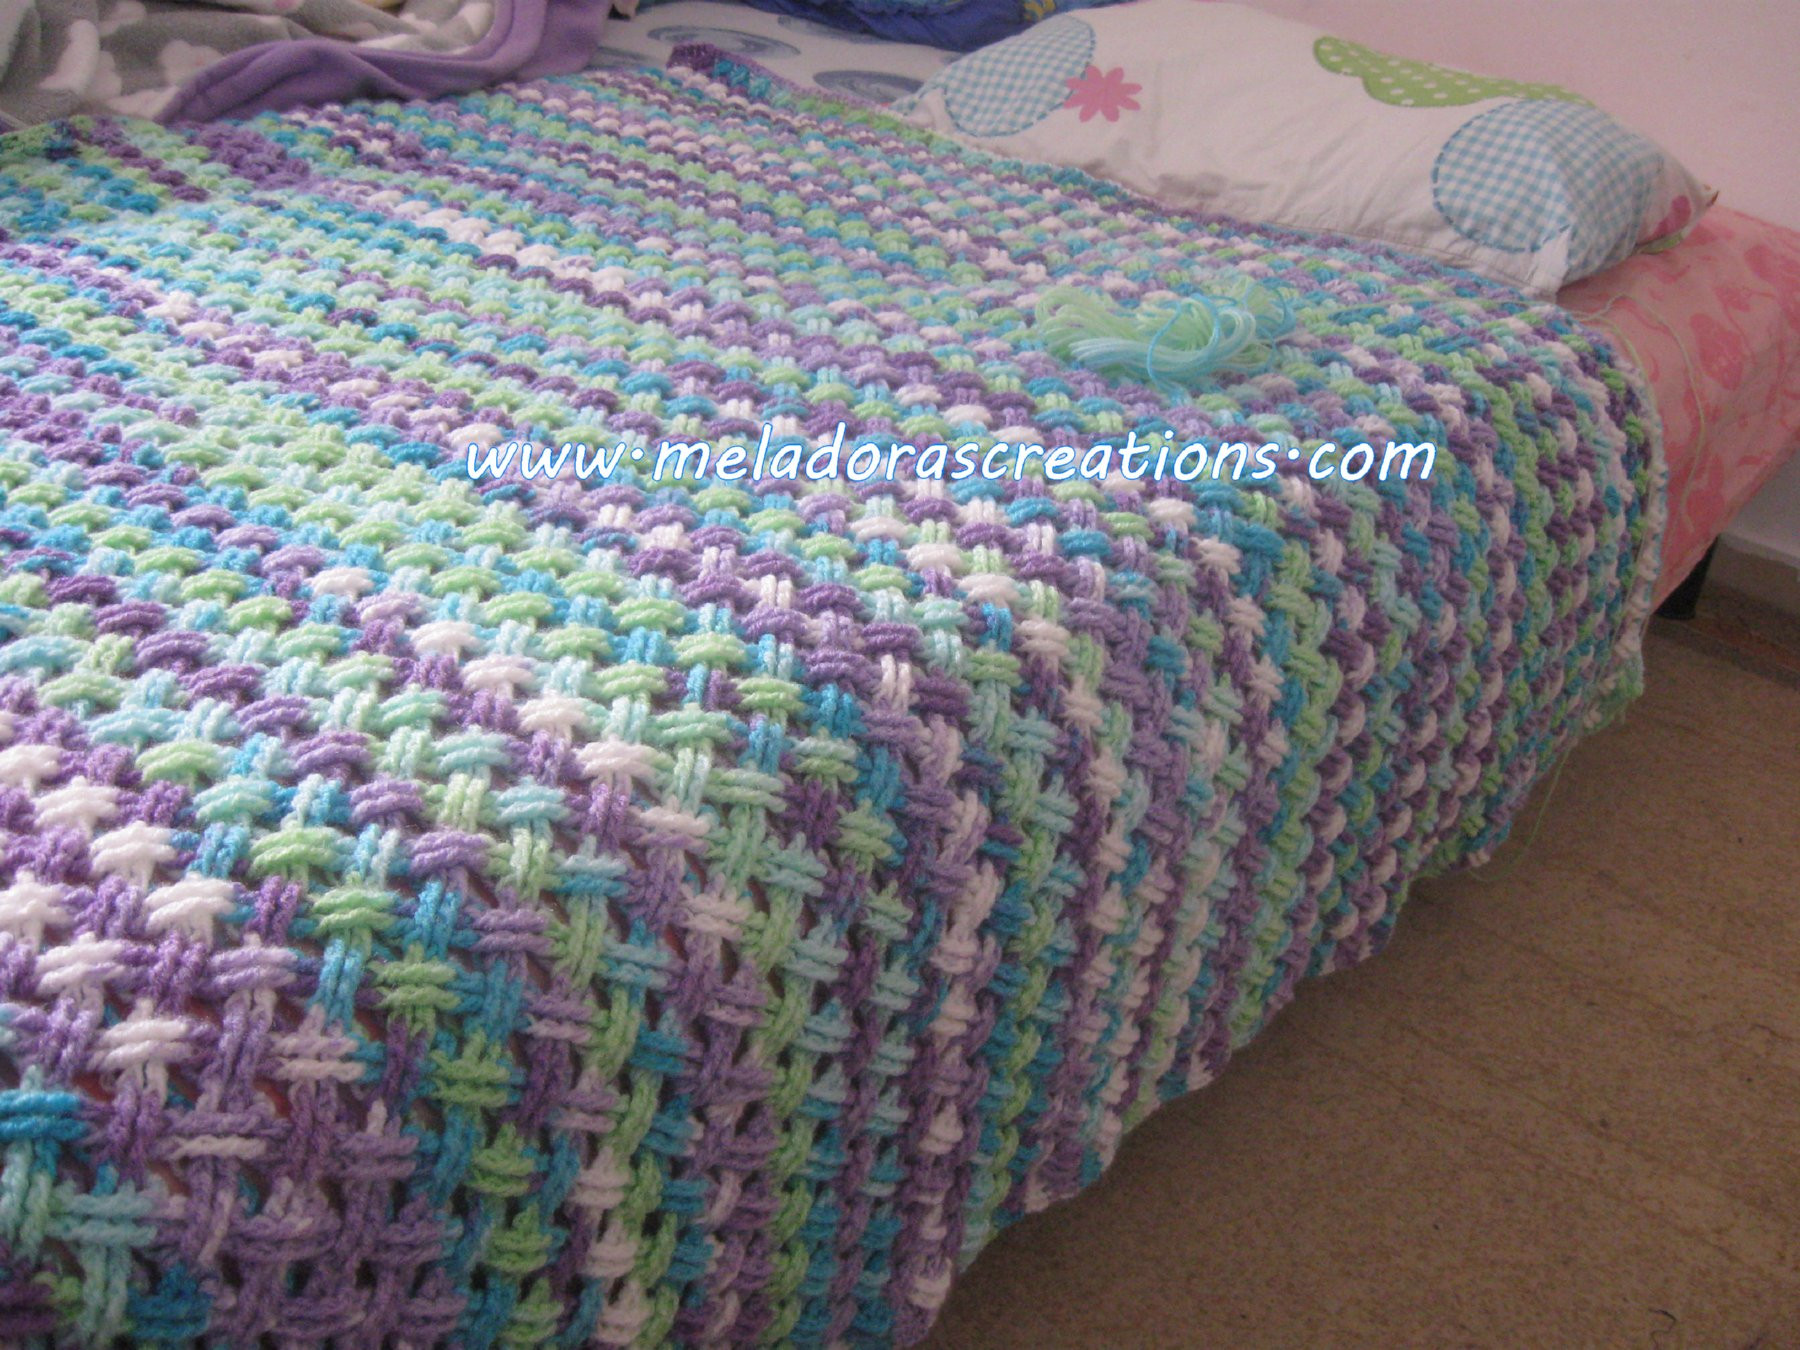 Meladora s Creations – Interweave Cable Celtic Weave